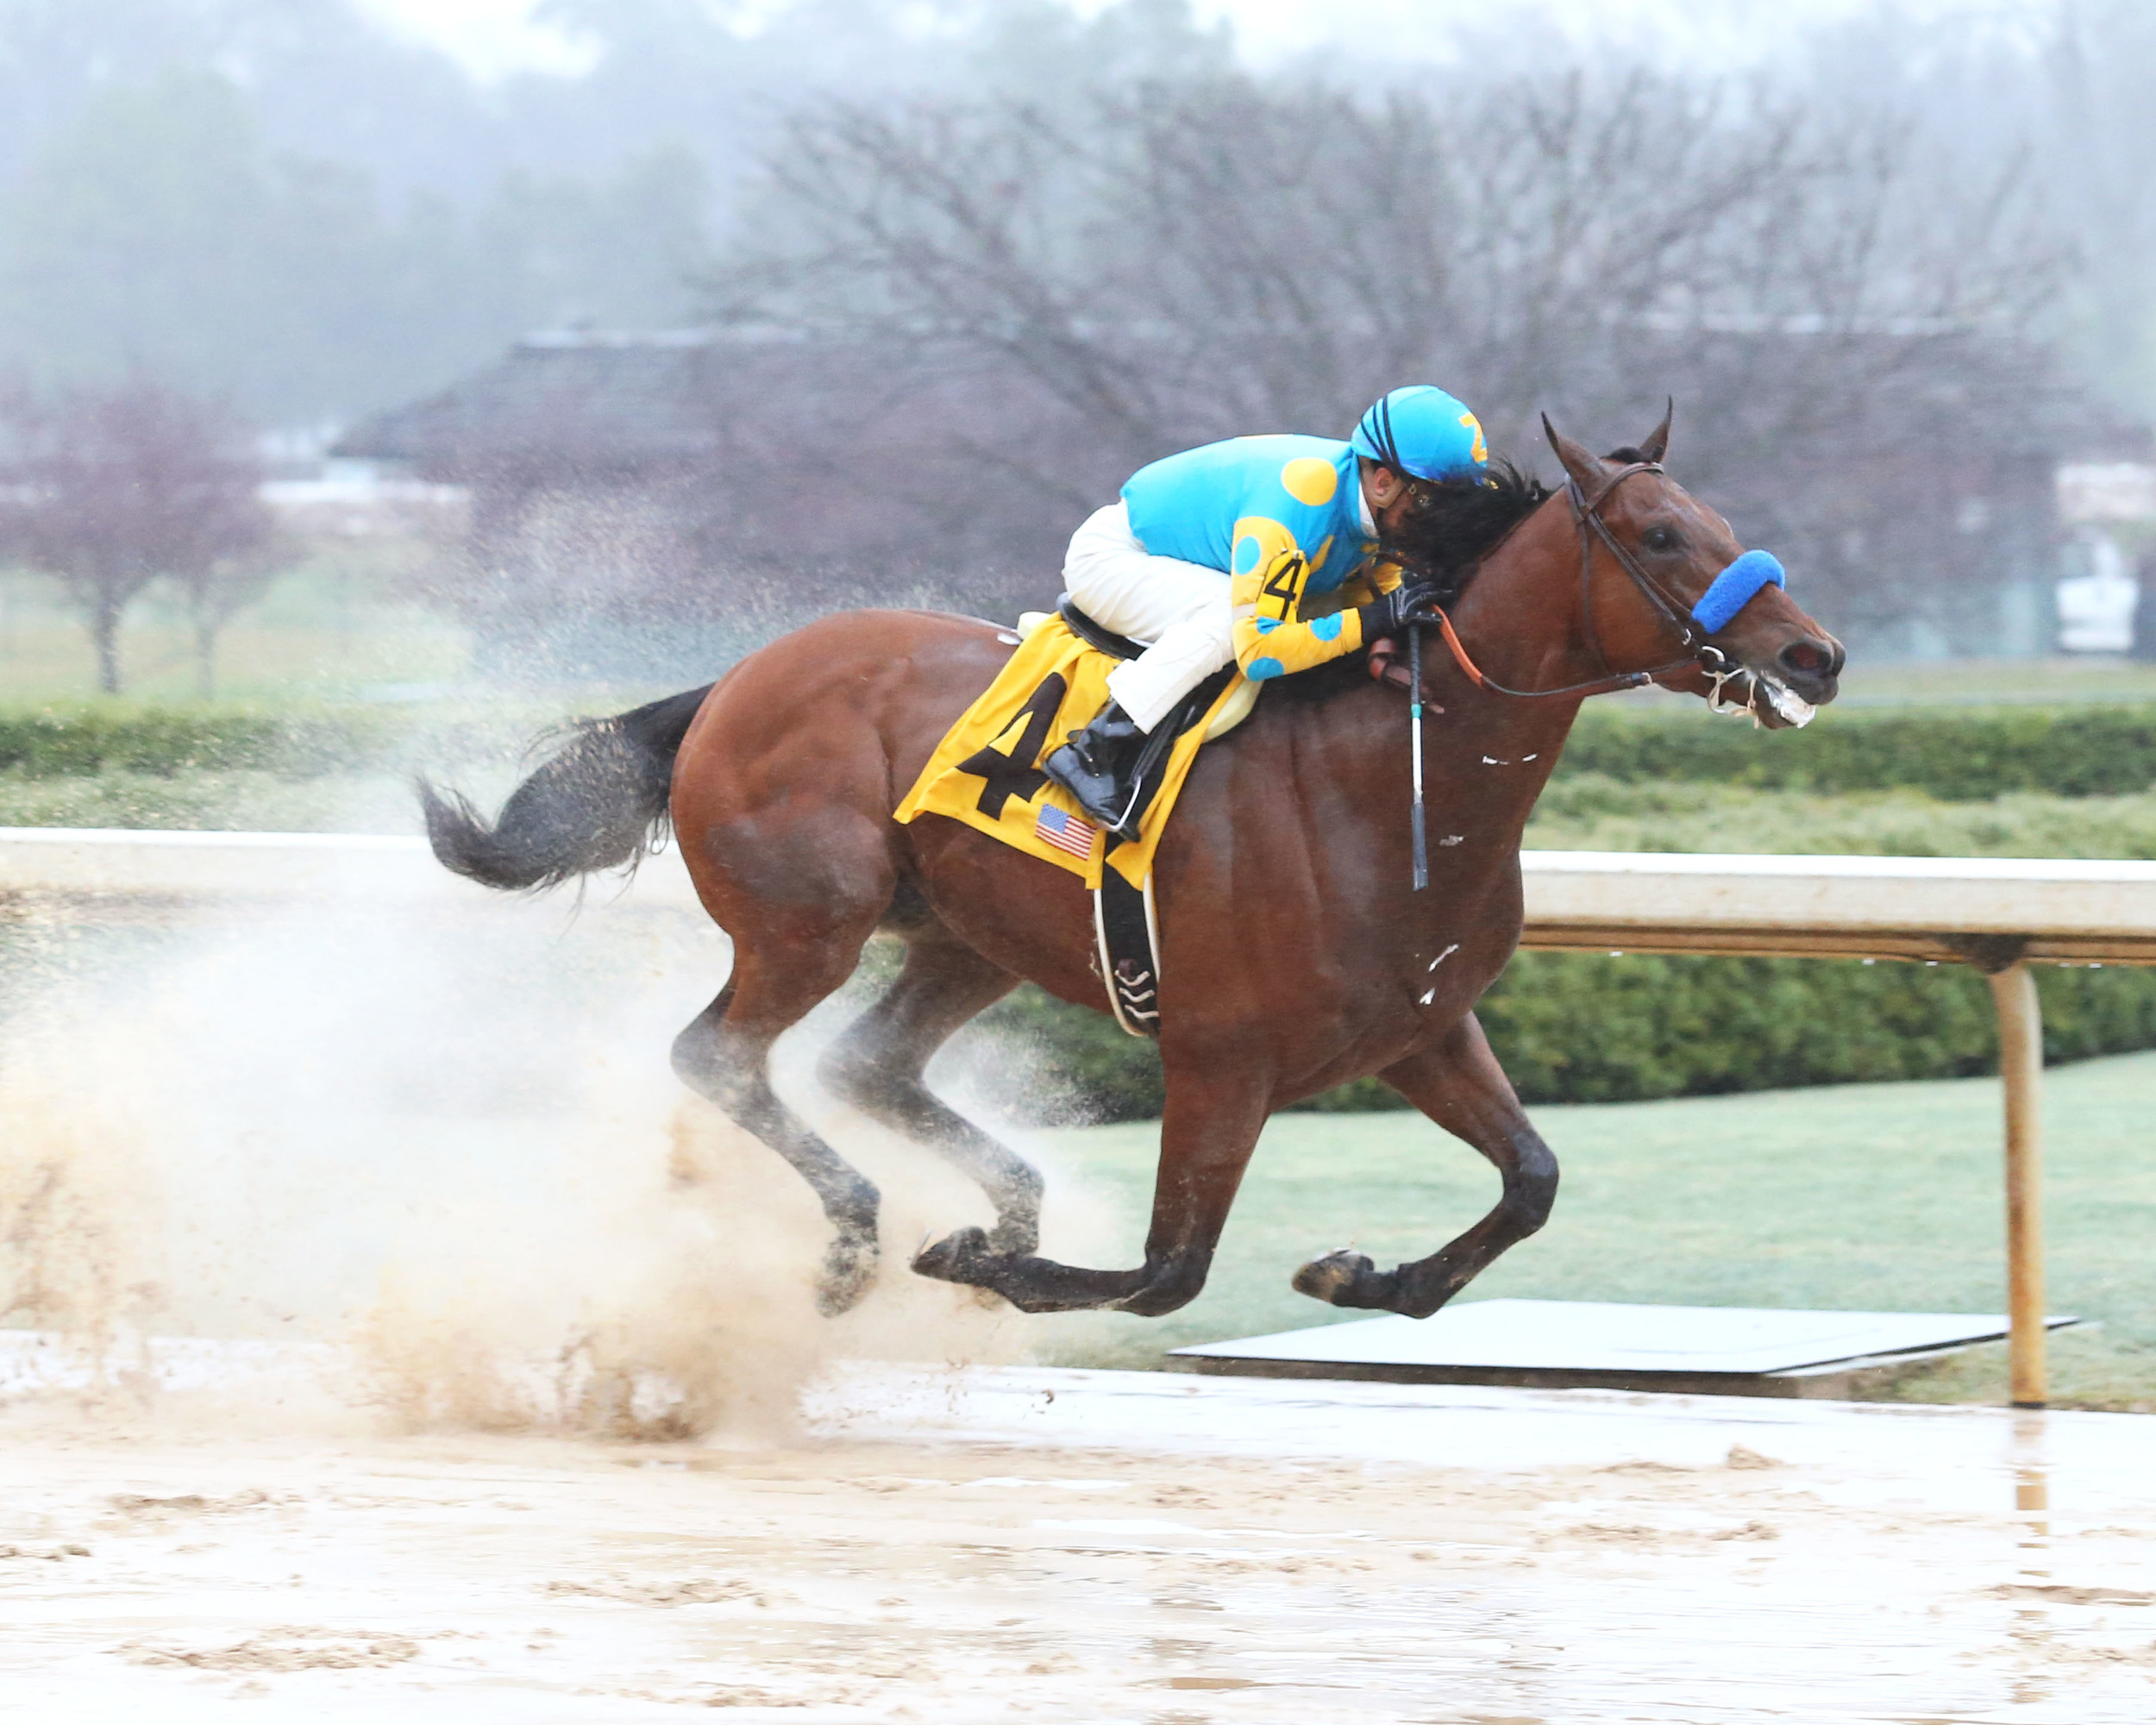 Photo Credit: http://www.kentuckyderby.com/